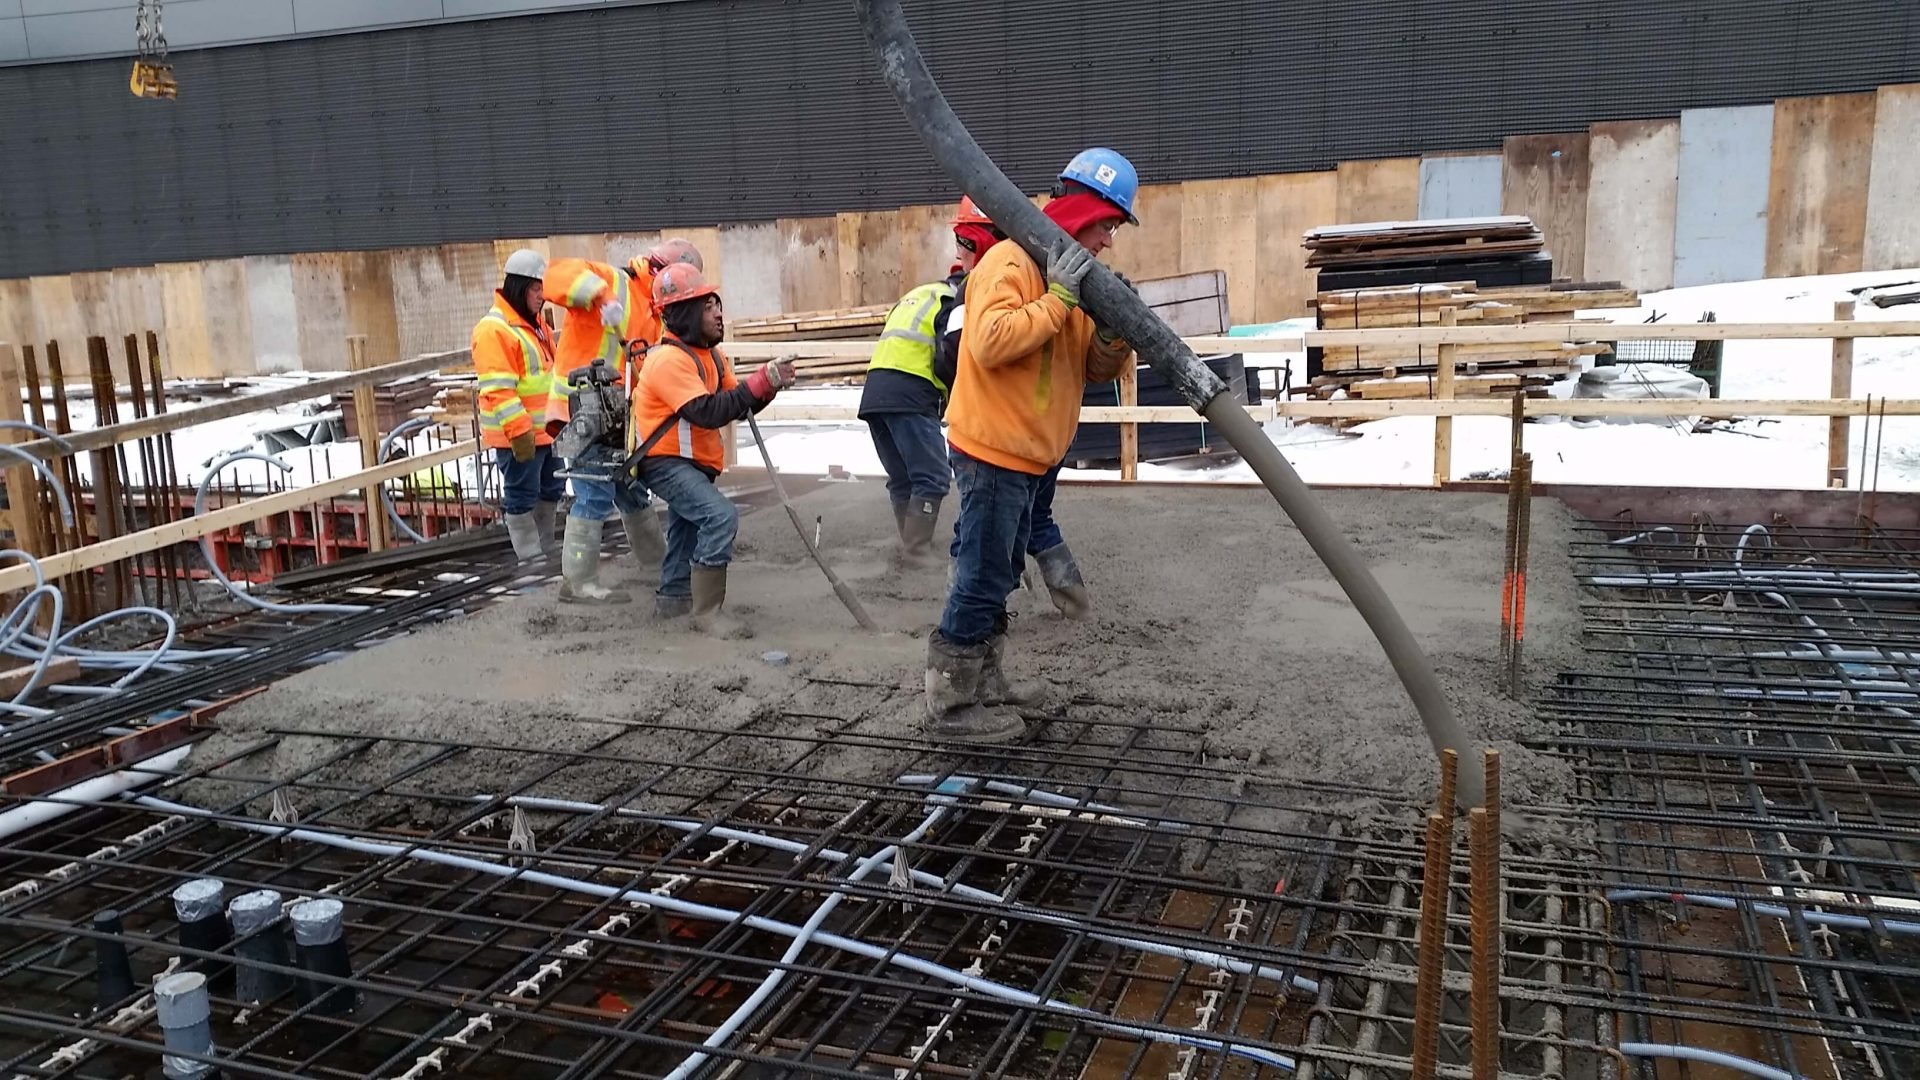 Workers placing concrete in cold weather